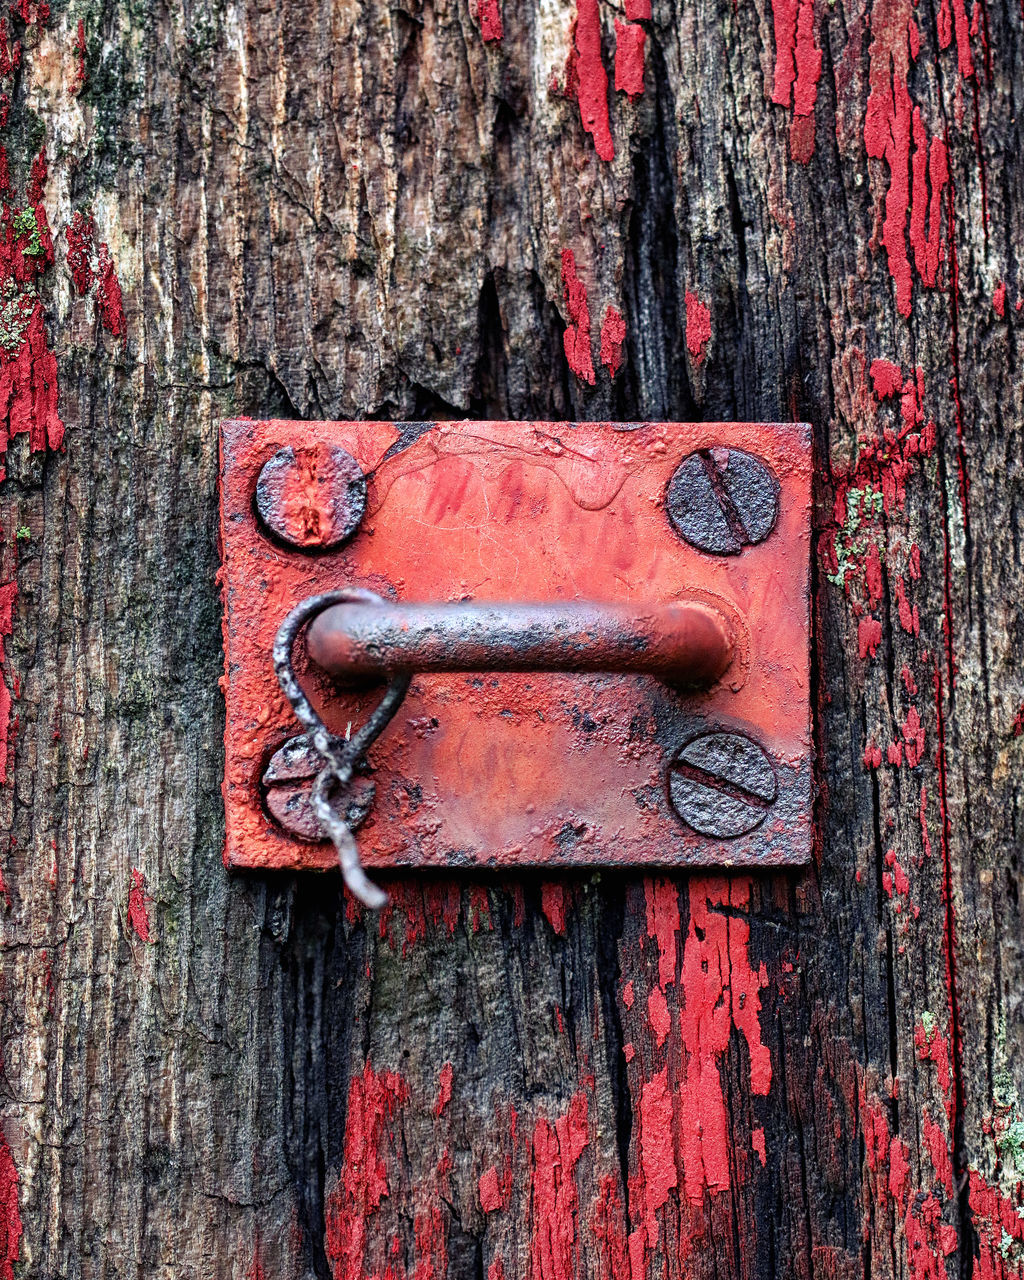 door, metal, wood - material, weathered, outdoors, close-up, day, red, no people, textured, rusty, latch